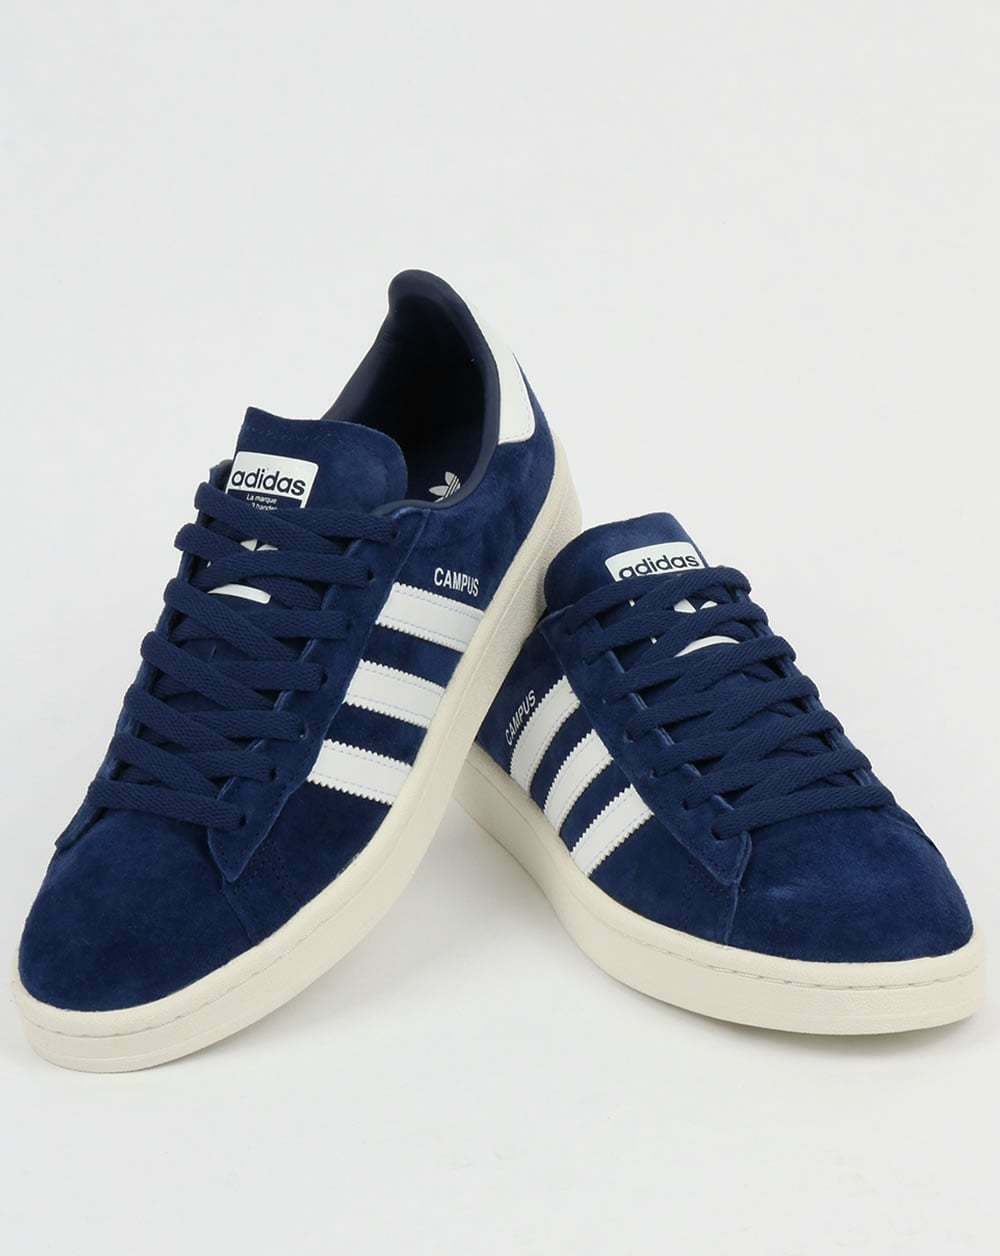 adidas Campus Trainers in Dark Blue & White suede - navy retro 3 stripes SALE